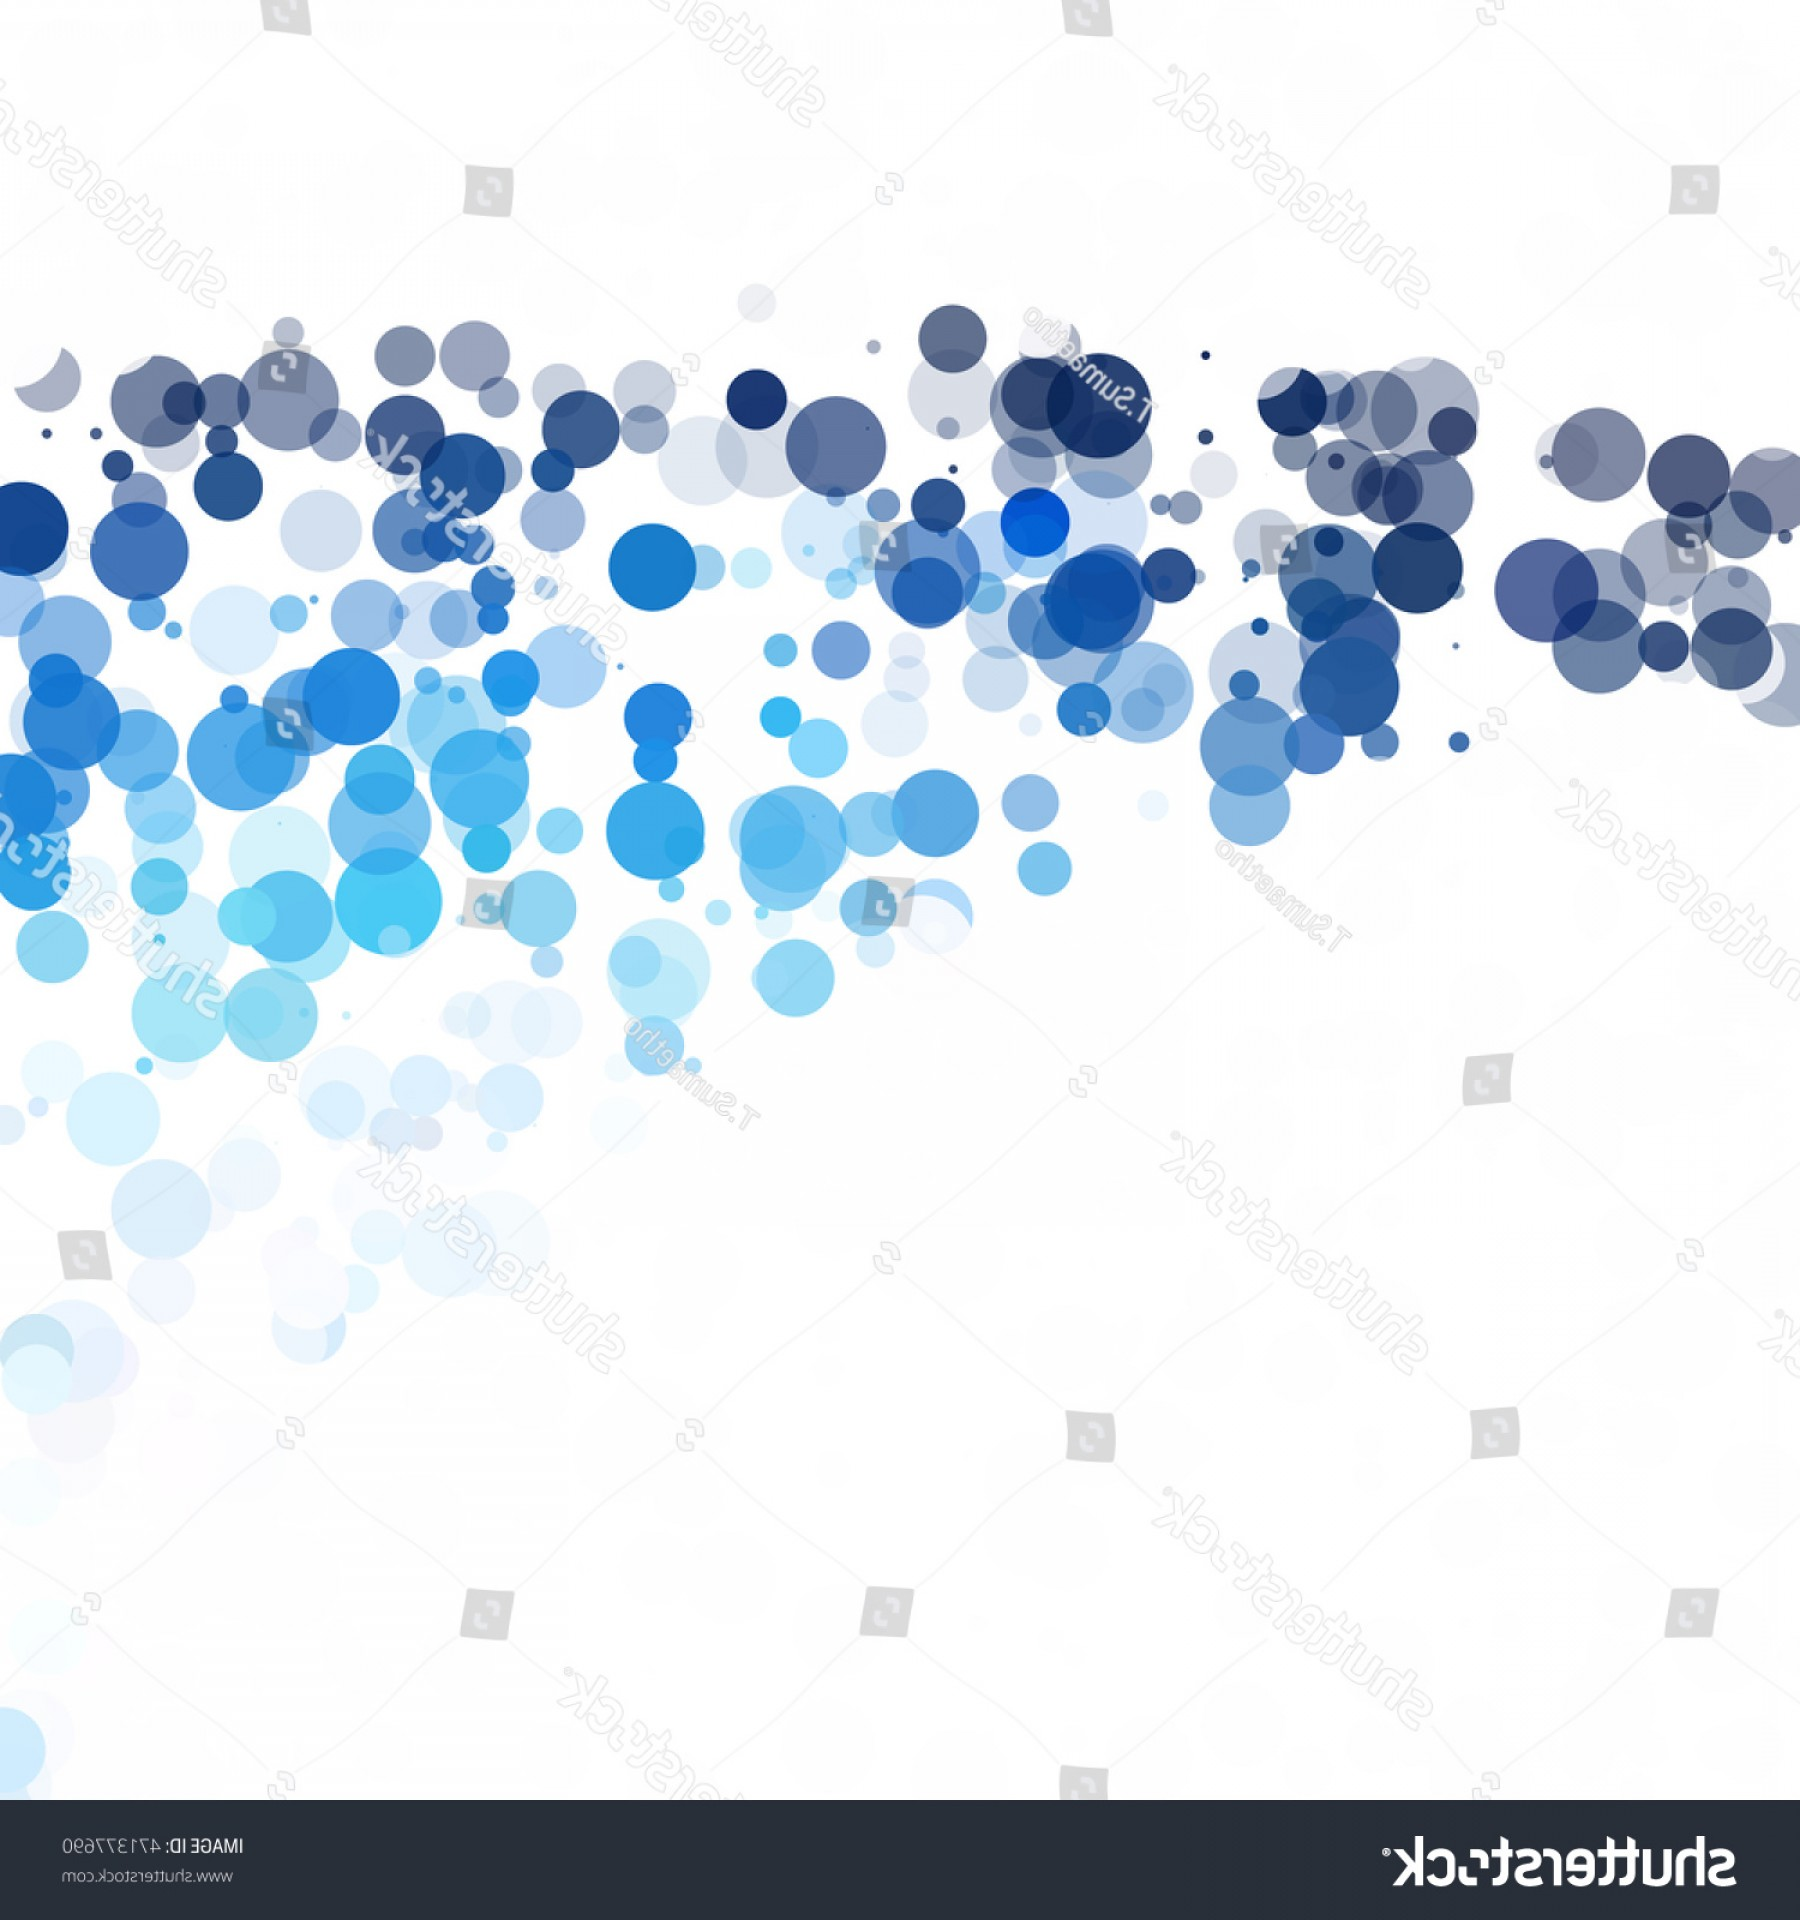 Vector Bubbles Circle: Stock Vector Bubbles Circle Dots Unique Blue Bright Vector Background